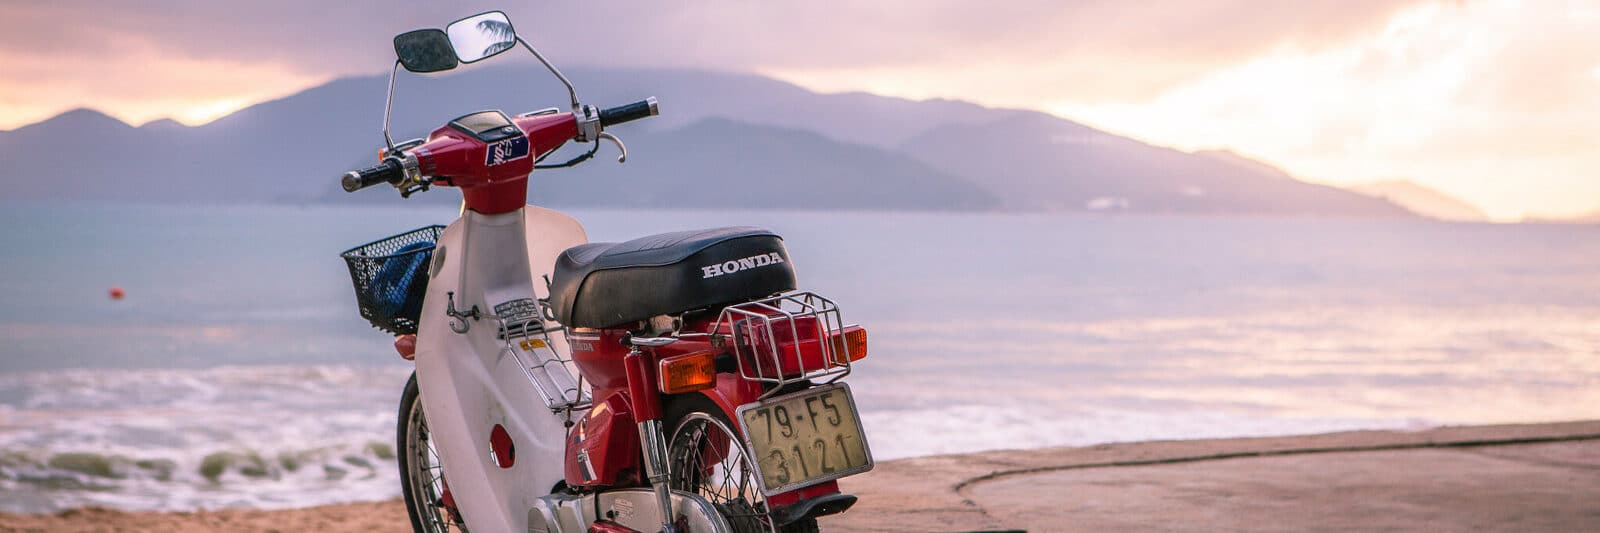 Image of a motorbike on the beach in Nha Trang, Vietnam